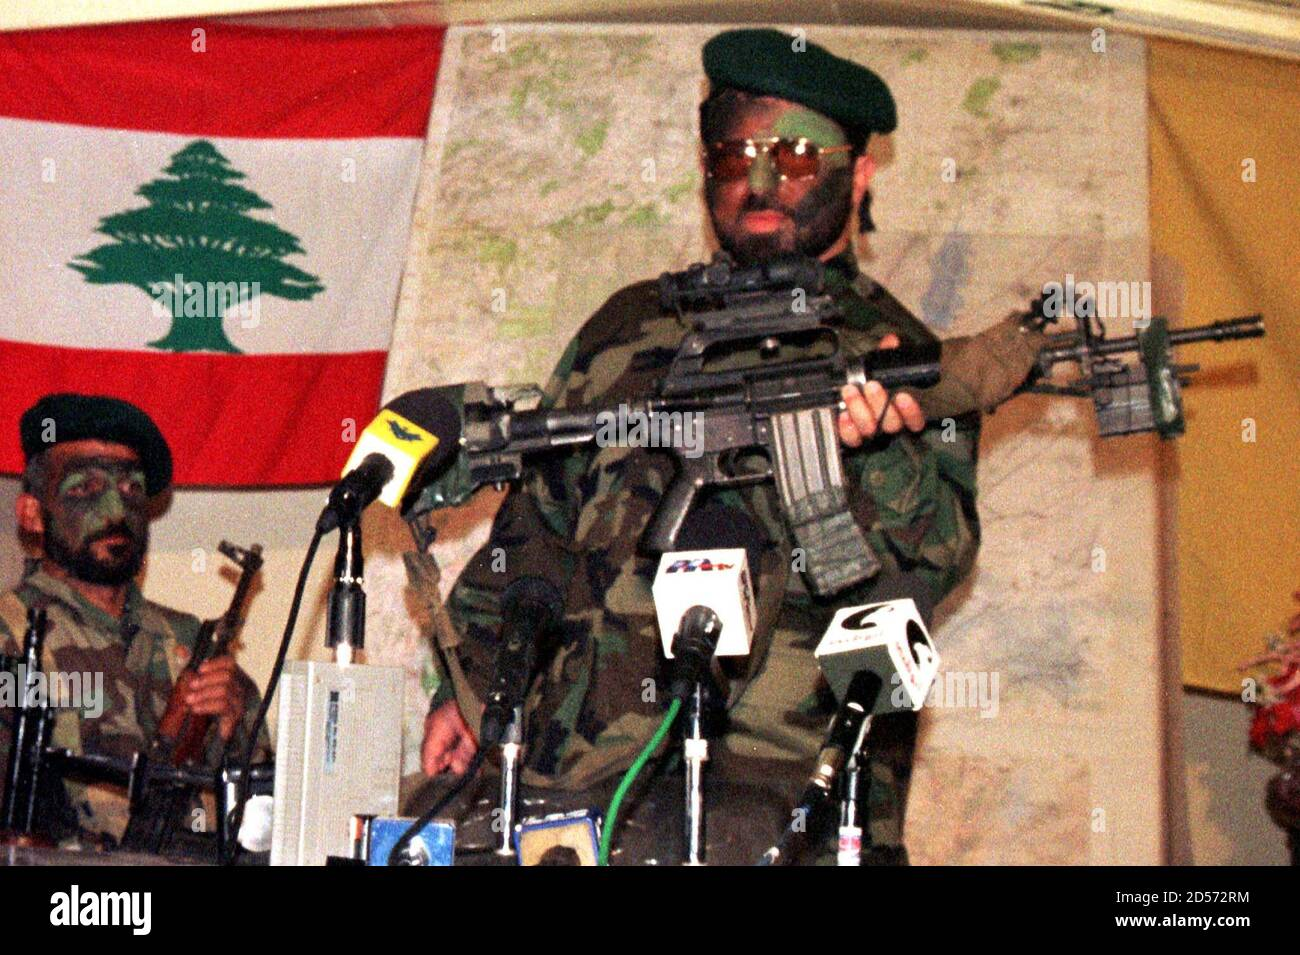 A Pro-Iranian Hizbollah geurrilla who staged the attack on the Israeli patrol February 23 shows reporters an M18 rifle bilonging to one of the dead Israeli officers, during a news conference held at a mountain cave less than five kms (miles) away from Berkit Jabour, in the Bekaa valley. The guerrillas killed three Israeli officers and wounded five other soldiers in fierce clashes overnight, a source in Israel's South Lebanon Army (SLA) proxy said on Tuesday.  JS/FMS Stock Photo